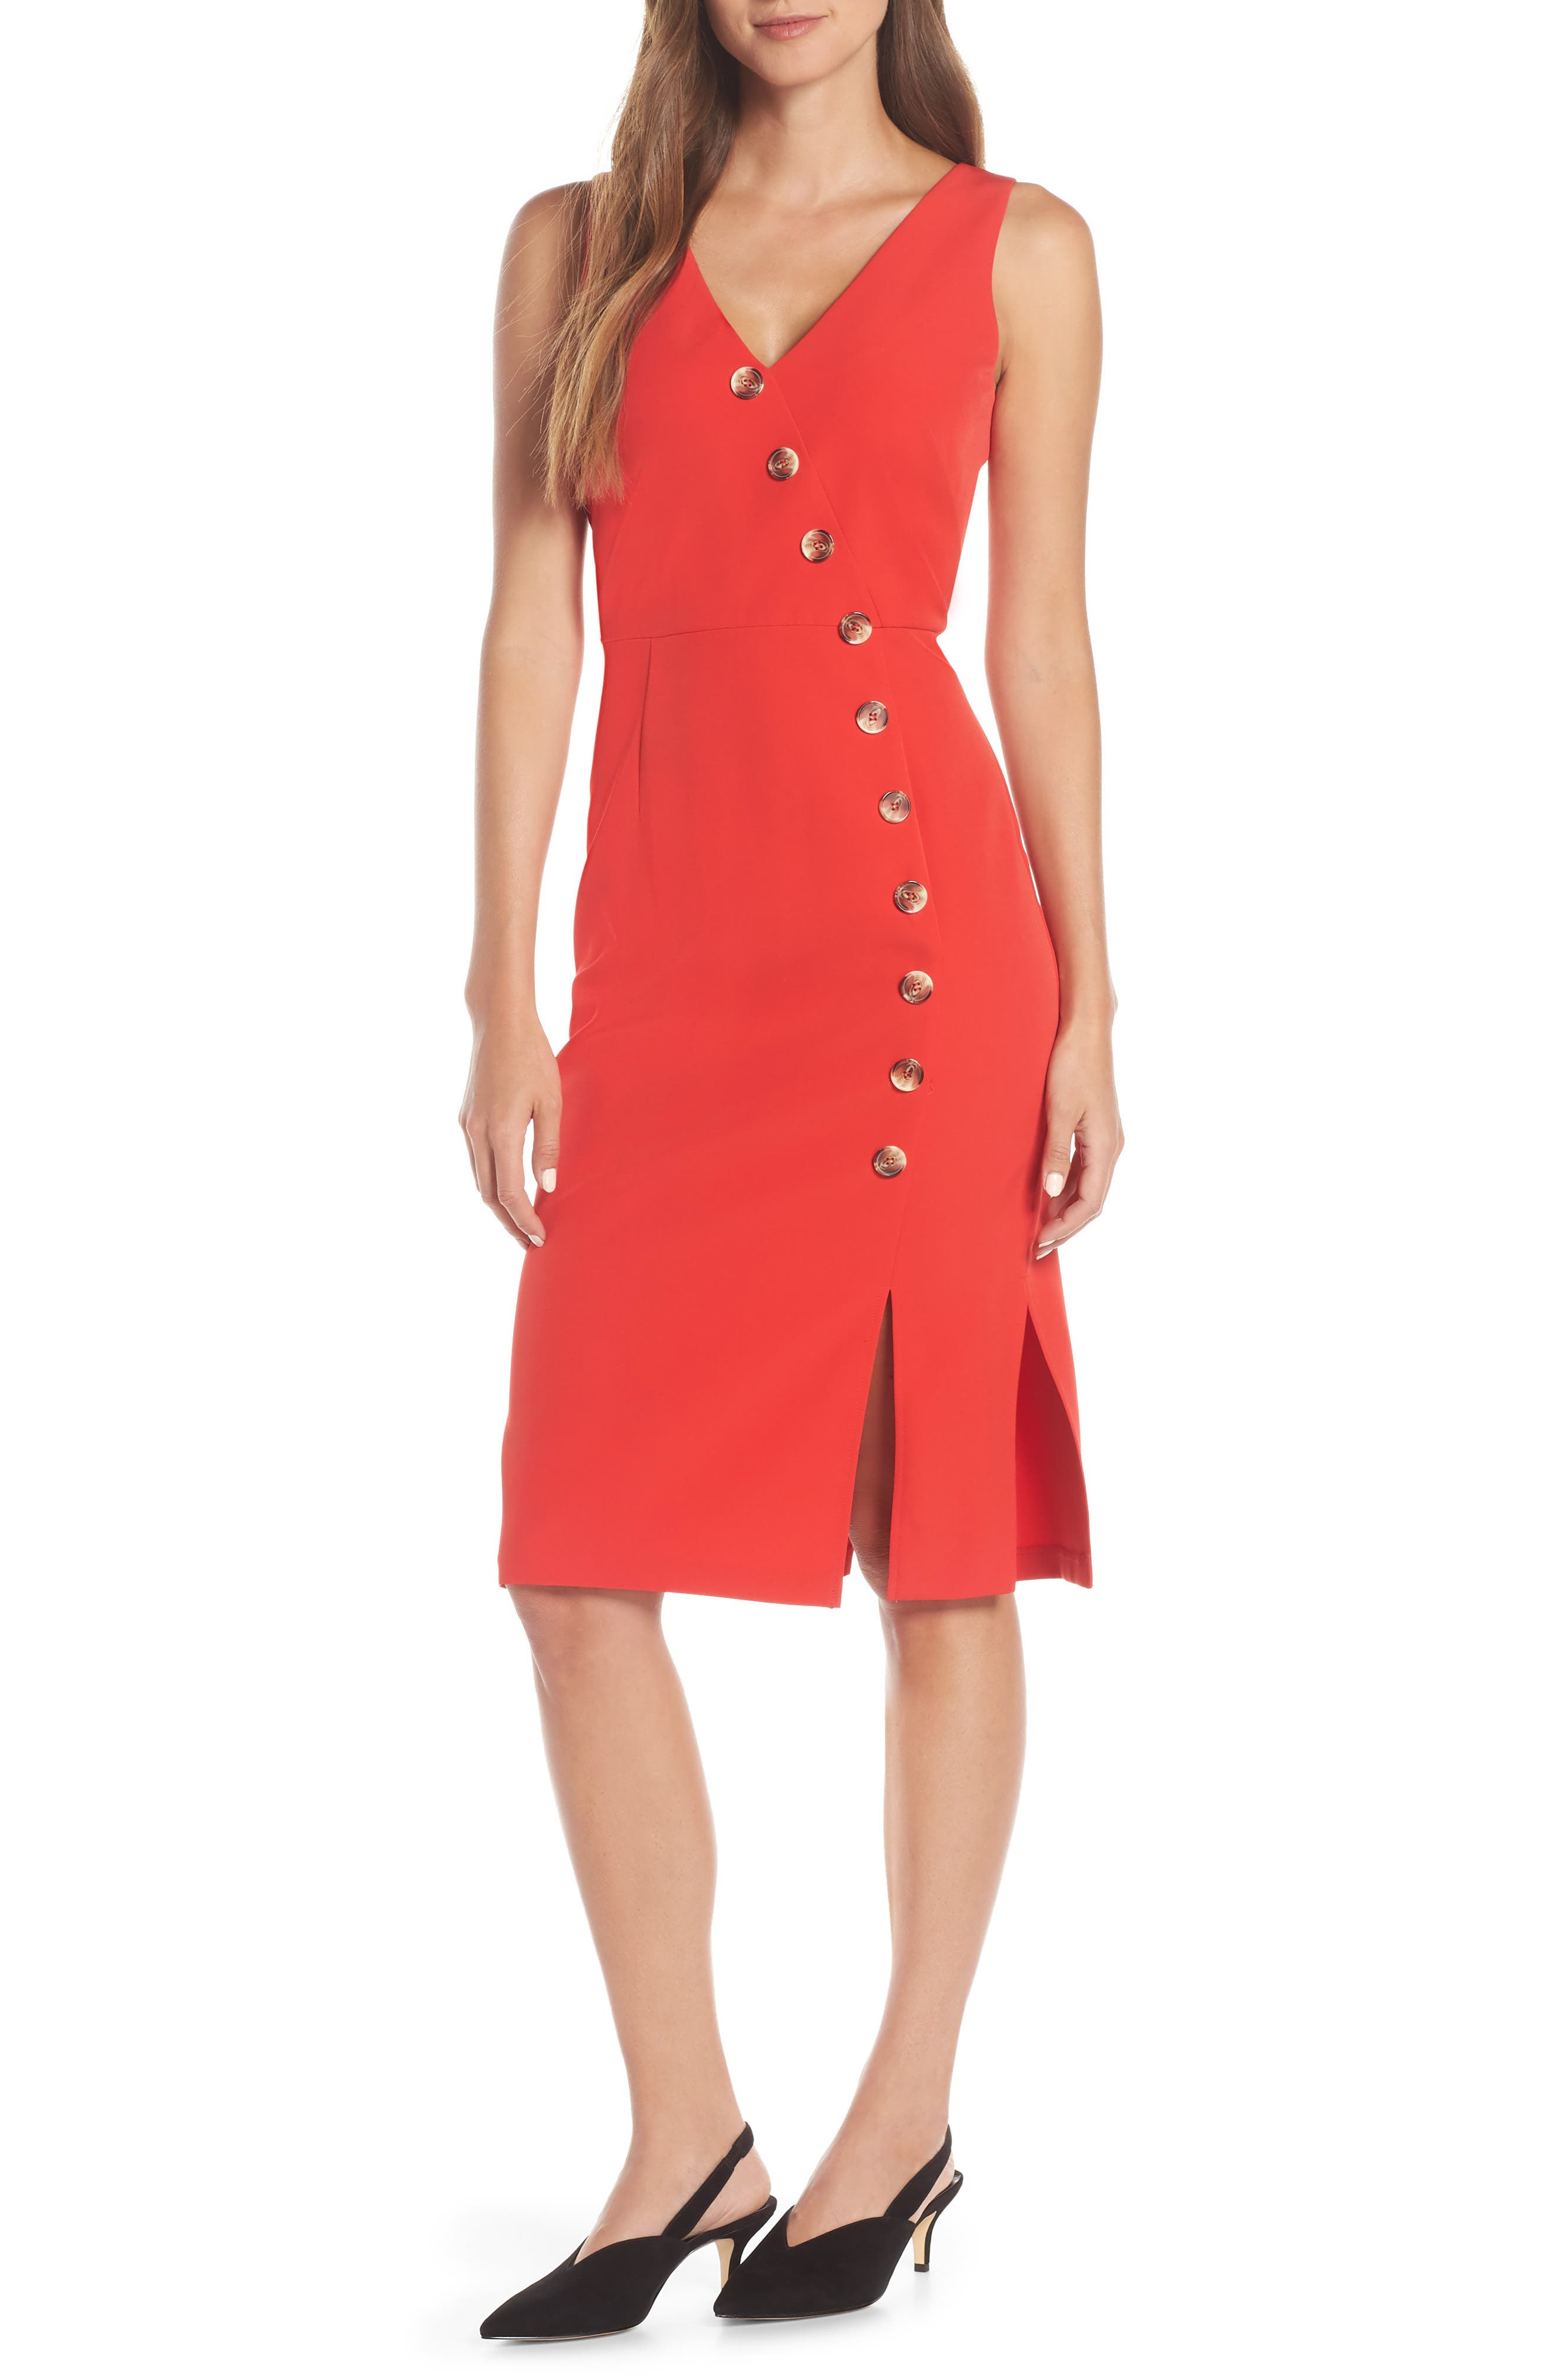 Vince Camuto Asymmetrical Button Front Dress, 8 (similar to 1) - Red